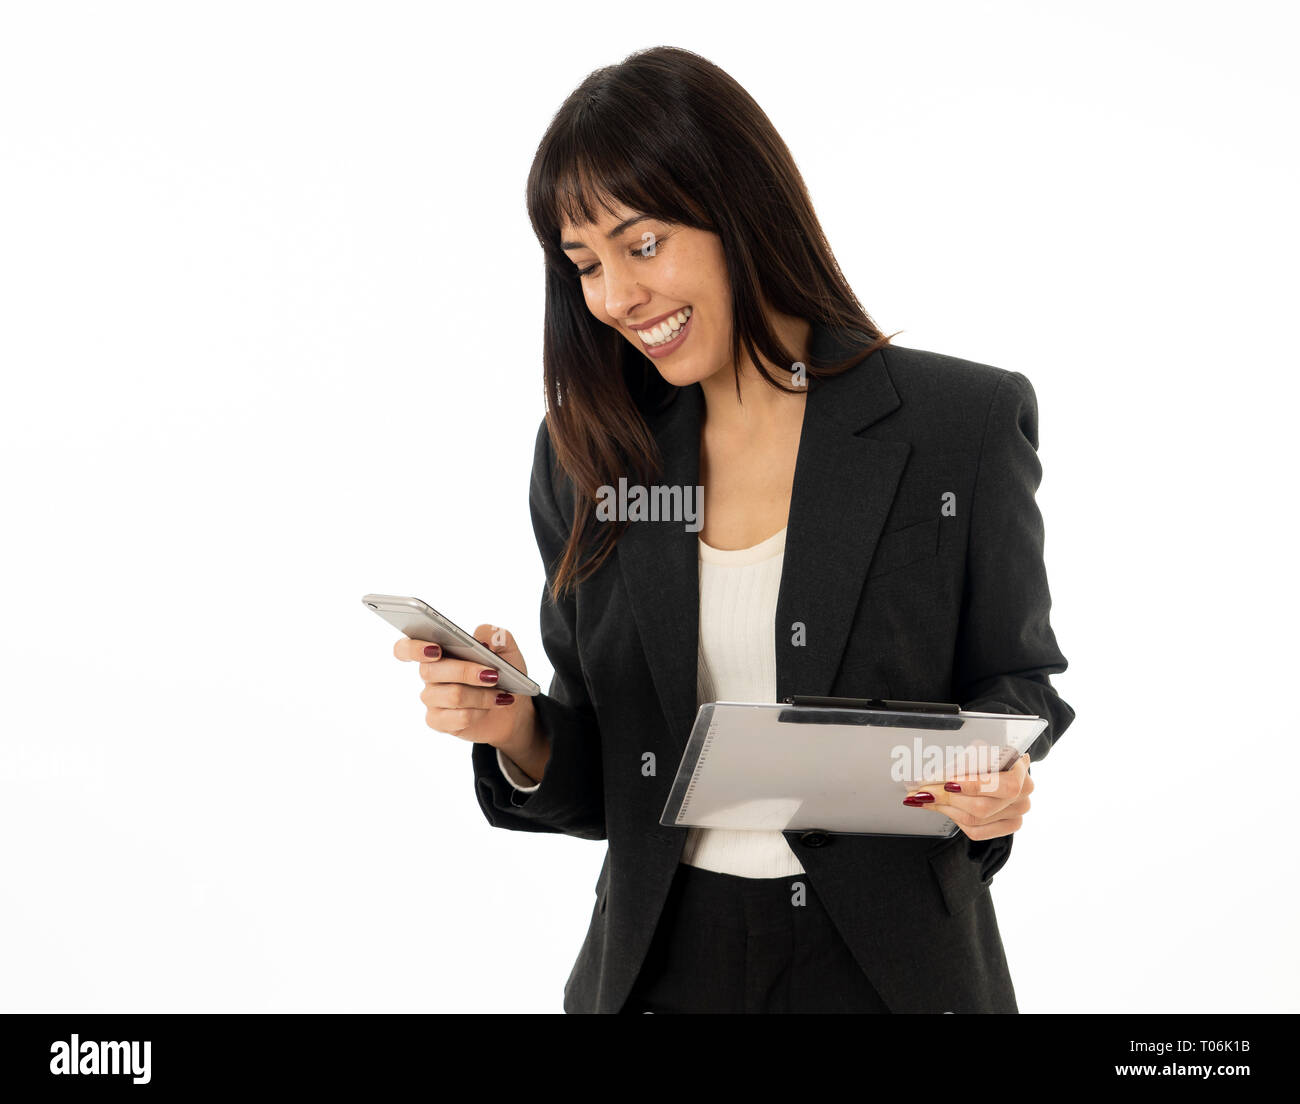 Portrait of young beautiful successful businesswoman emailing and sending messages on mobile smart phone feeling confident at work. In people business - Stock Image